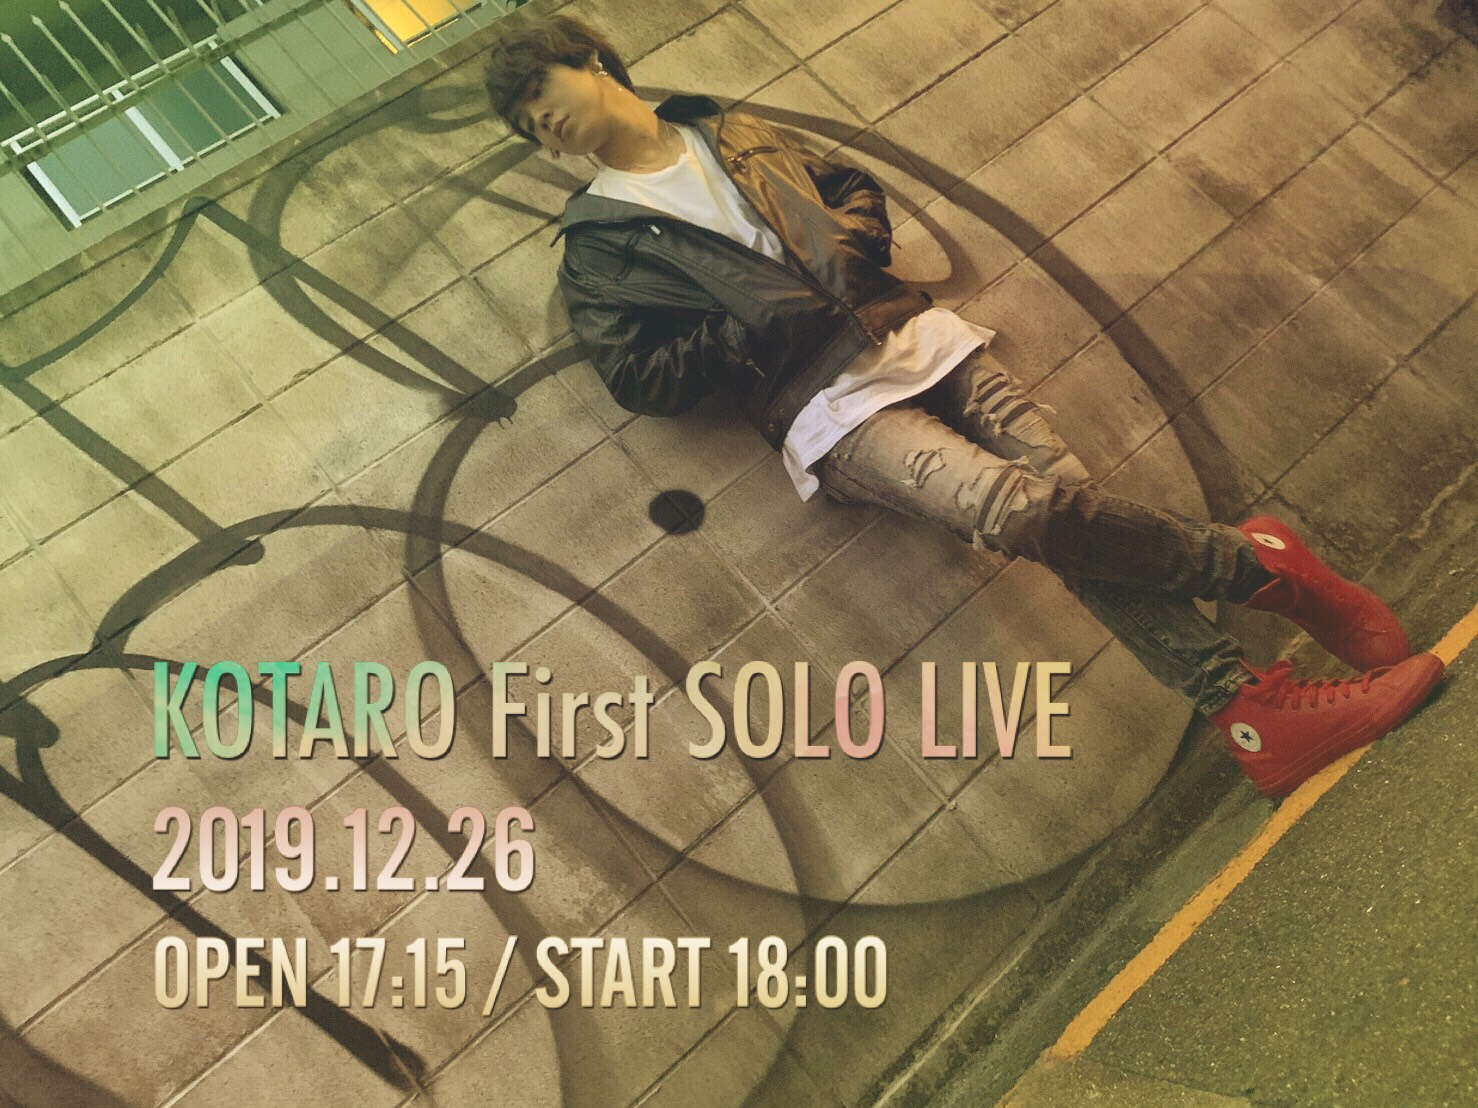 Kotaro First Live -One day late Christmas-